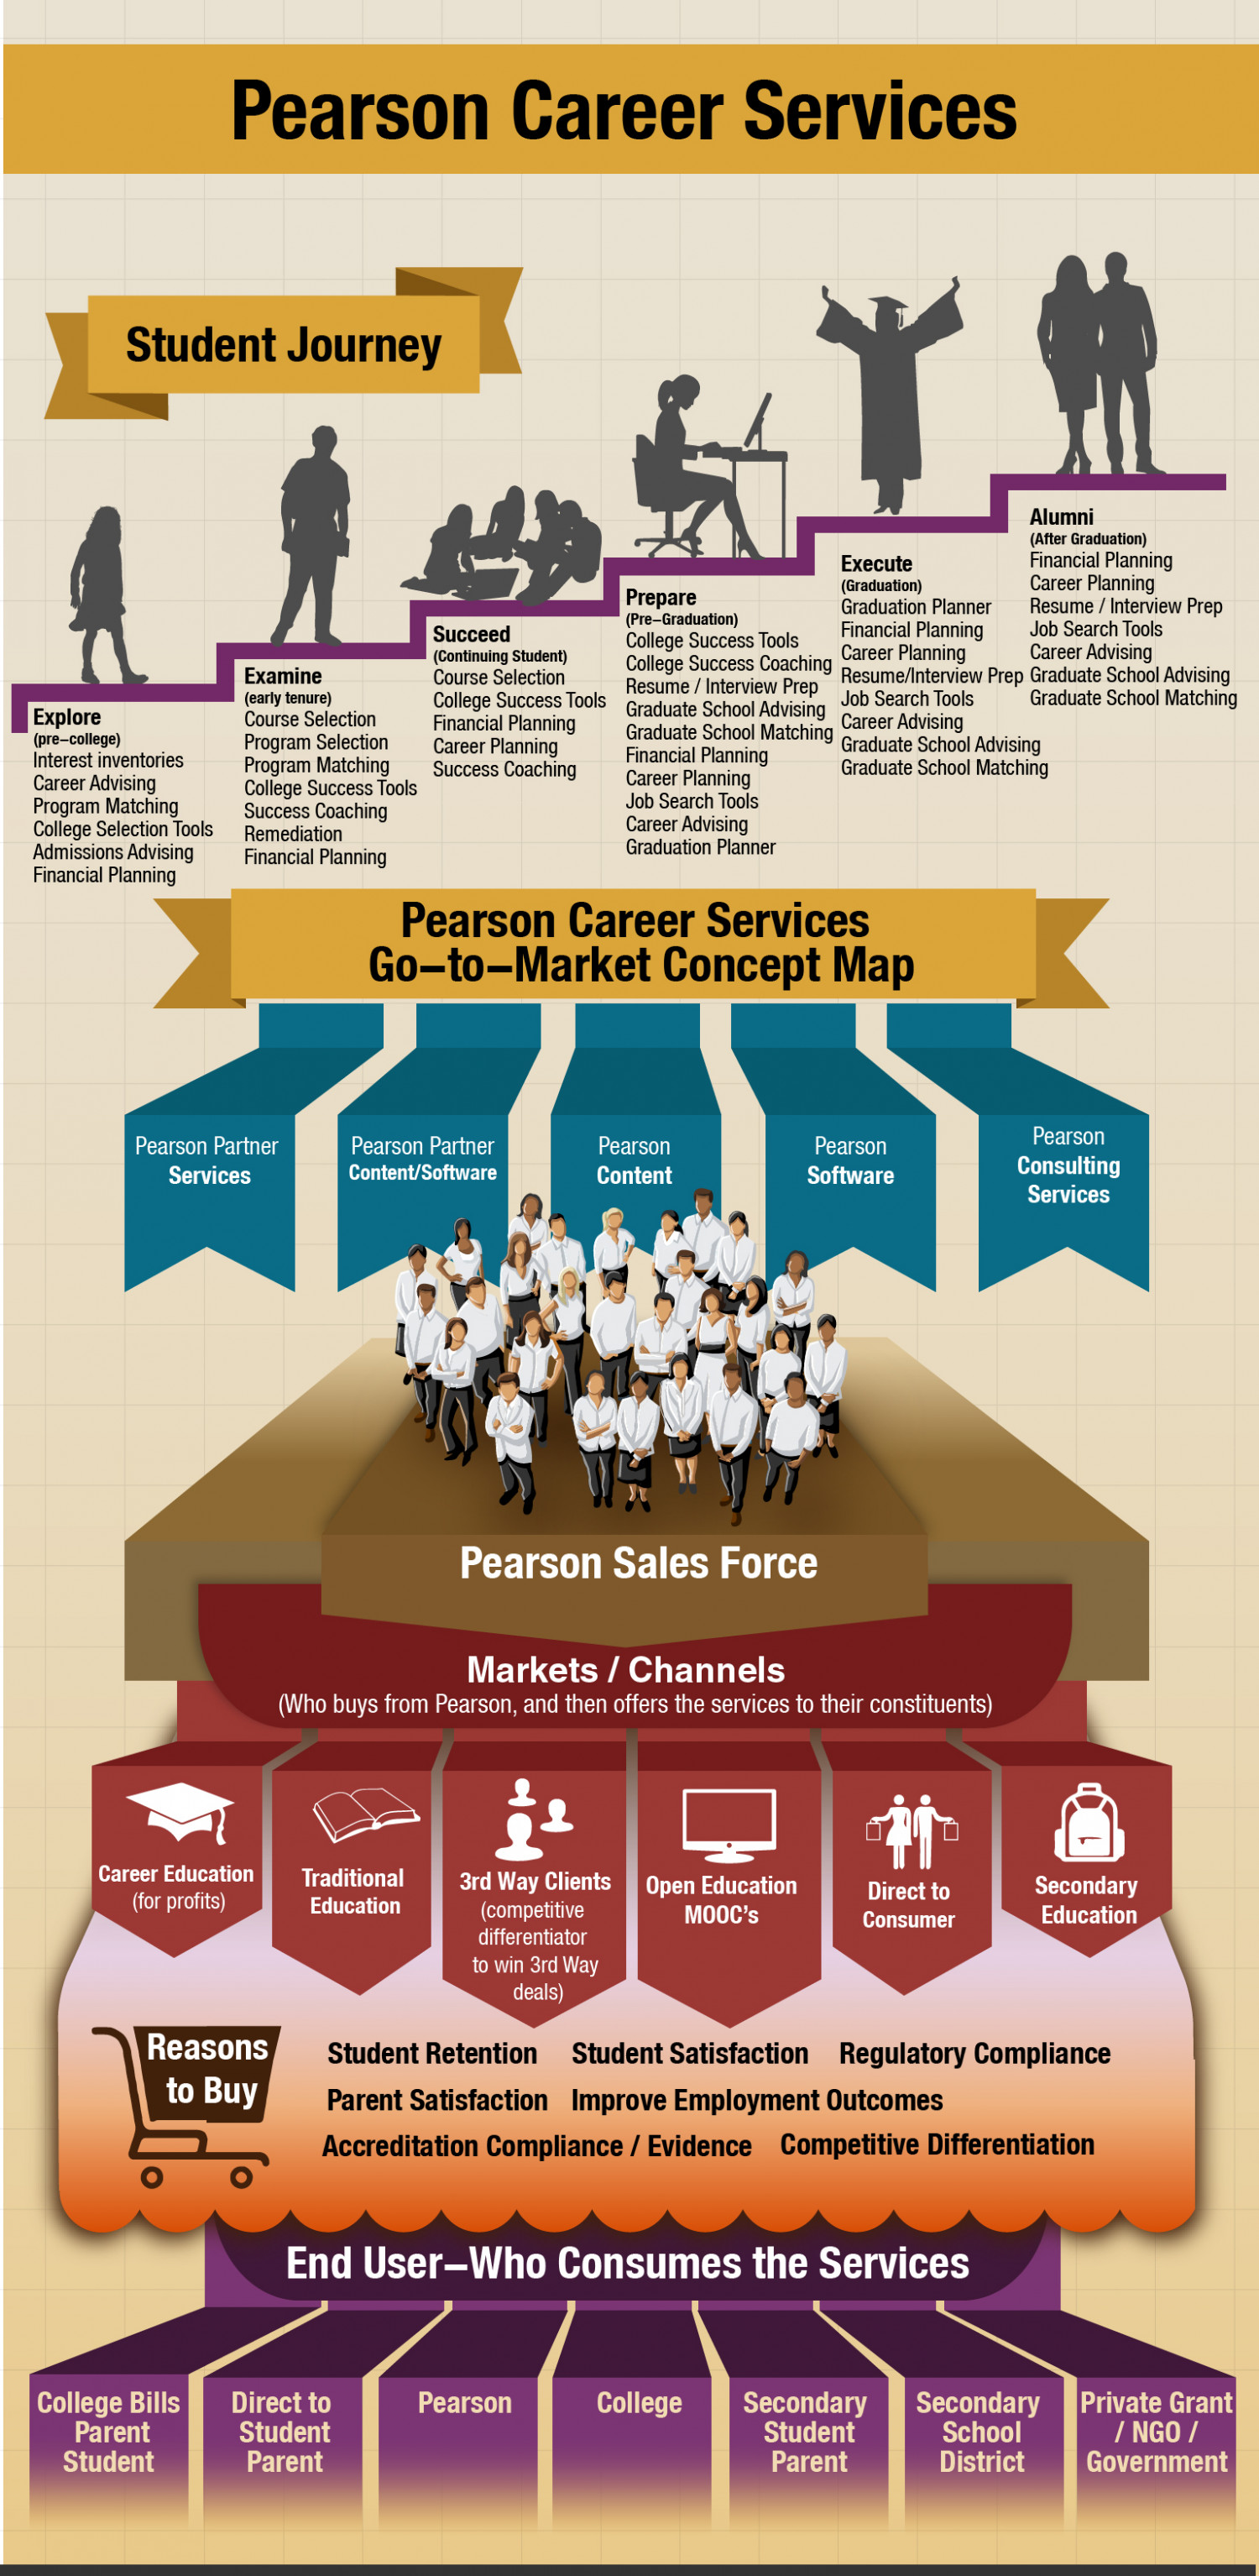 Pearson Career Services Infographic